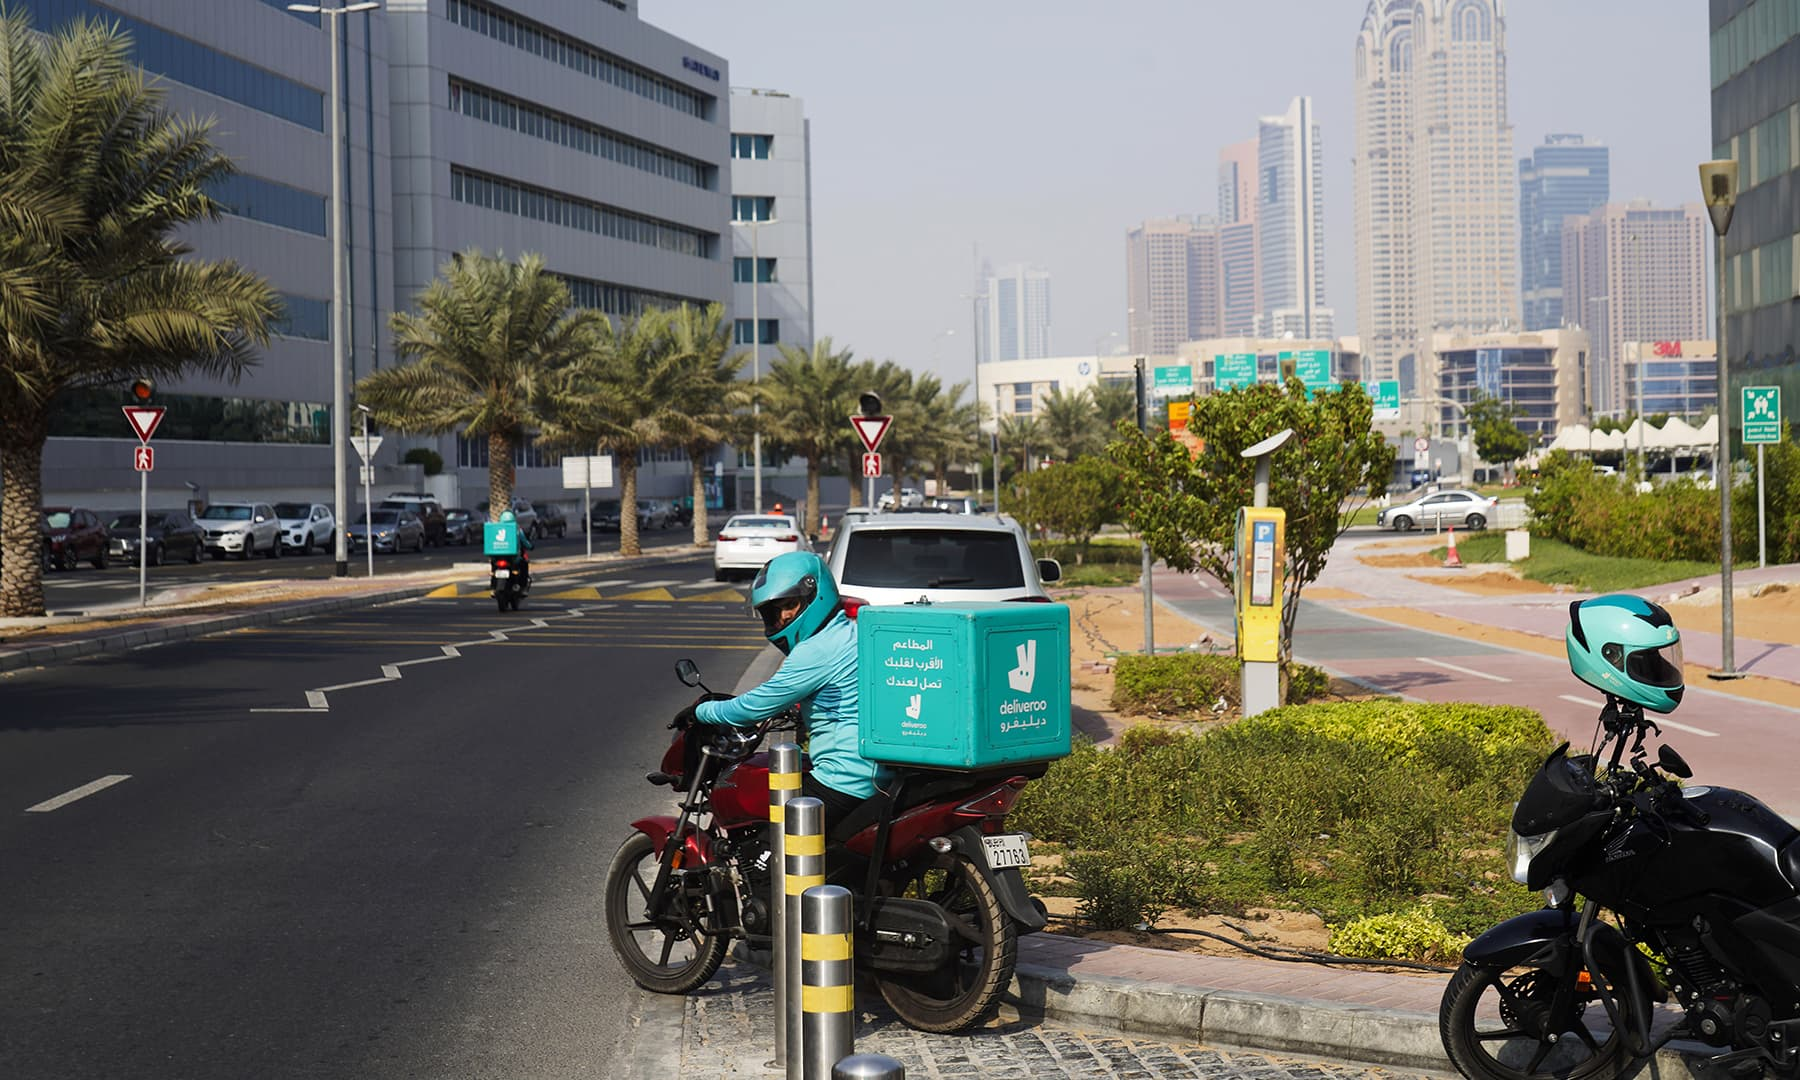 A delivery driver for the app Deliveroo prepares to make a delivery, in Dubai, United Arab Emirates, on Sept 9. — AP